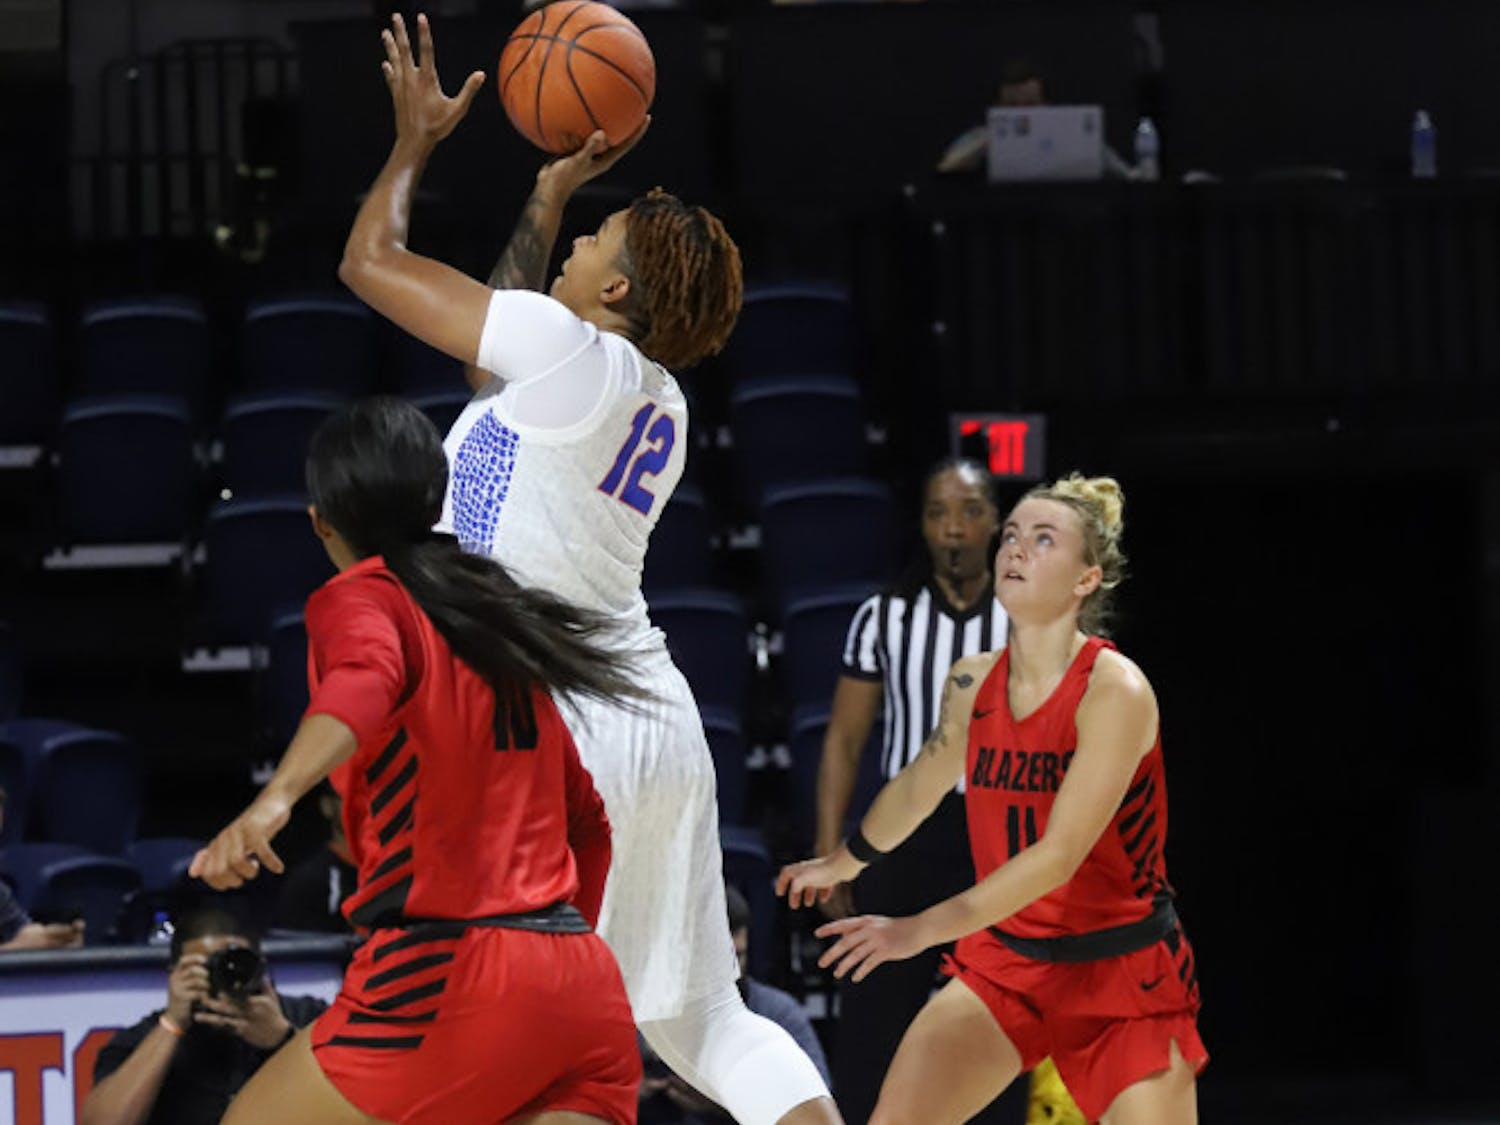 Forward Zada Williams had 13 points on 6-of-9 shooting in UF's exhibition win over Valdosta State.